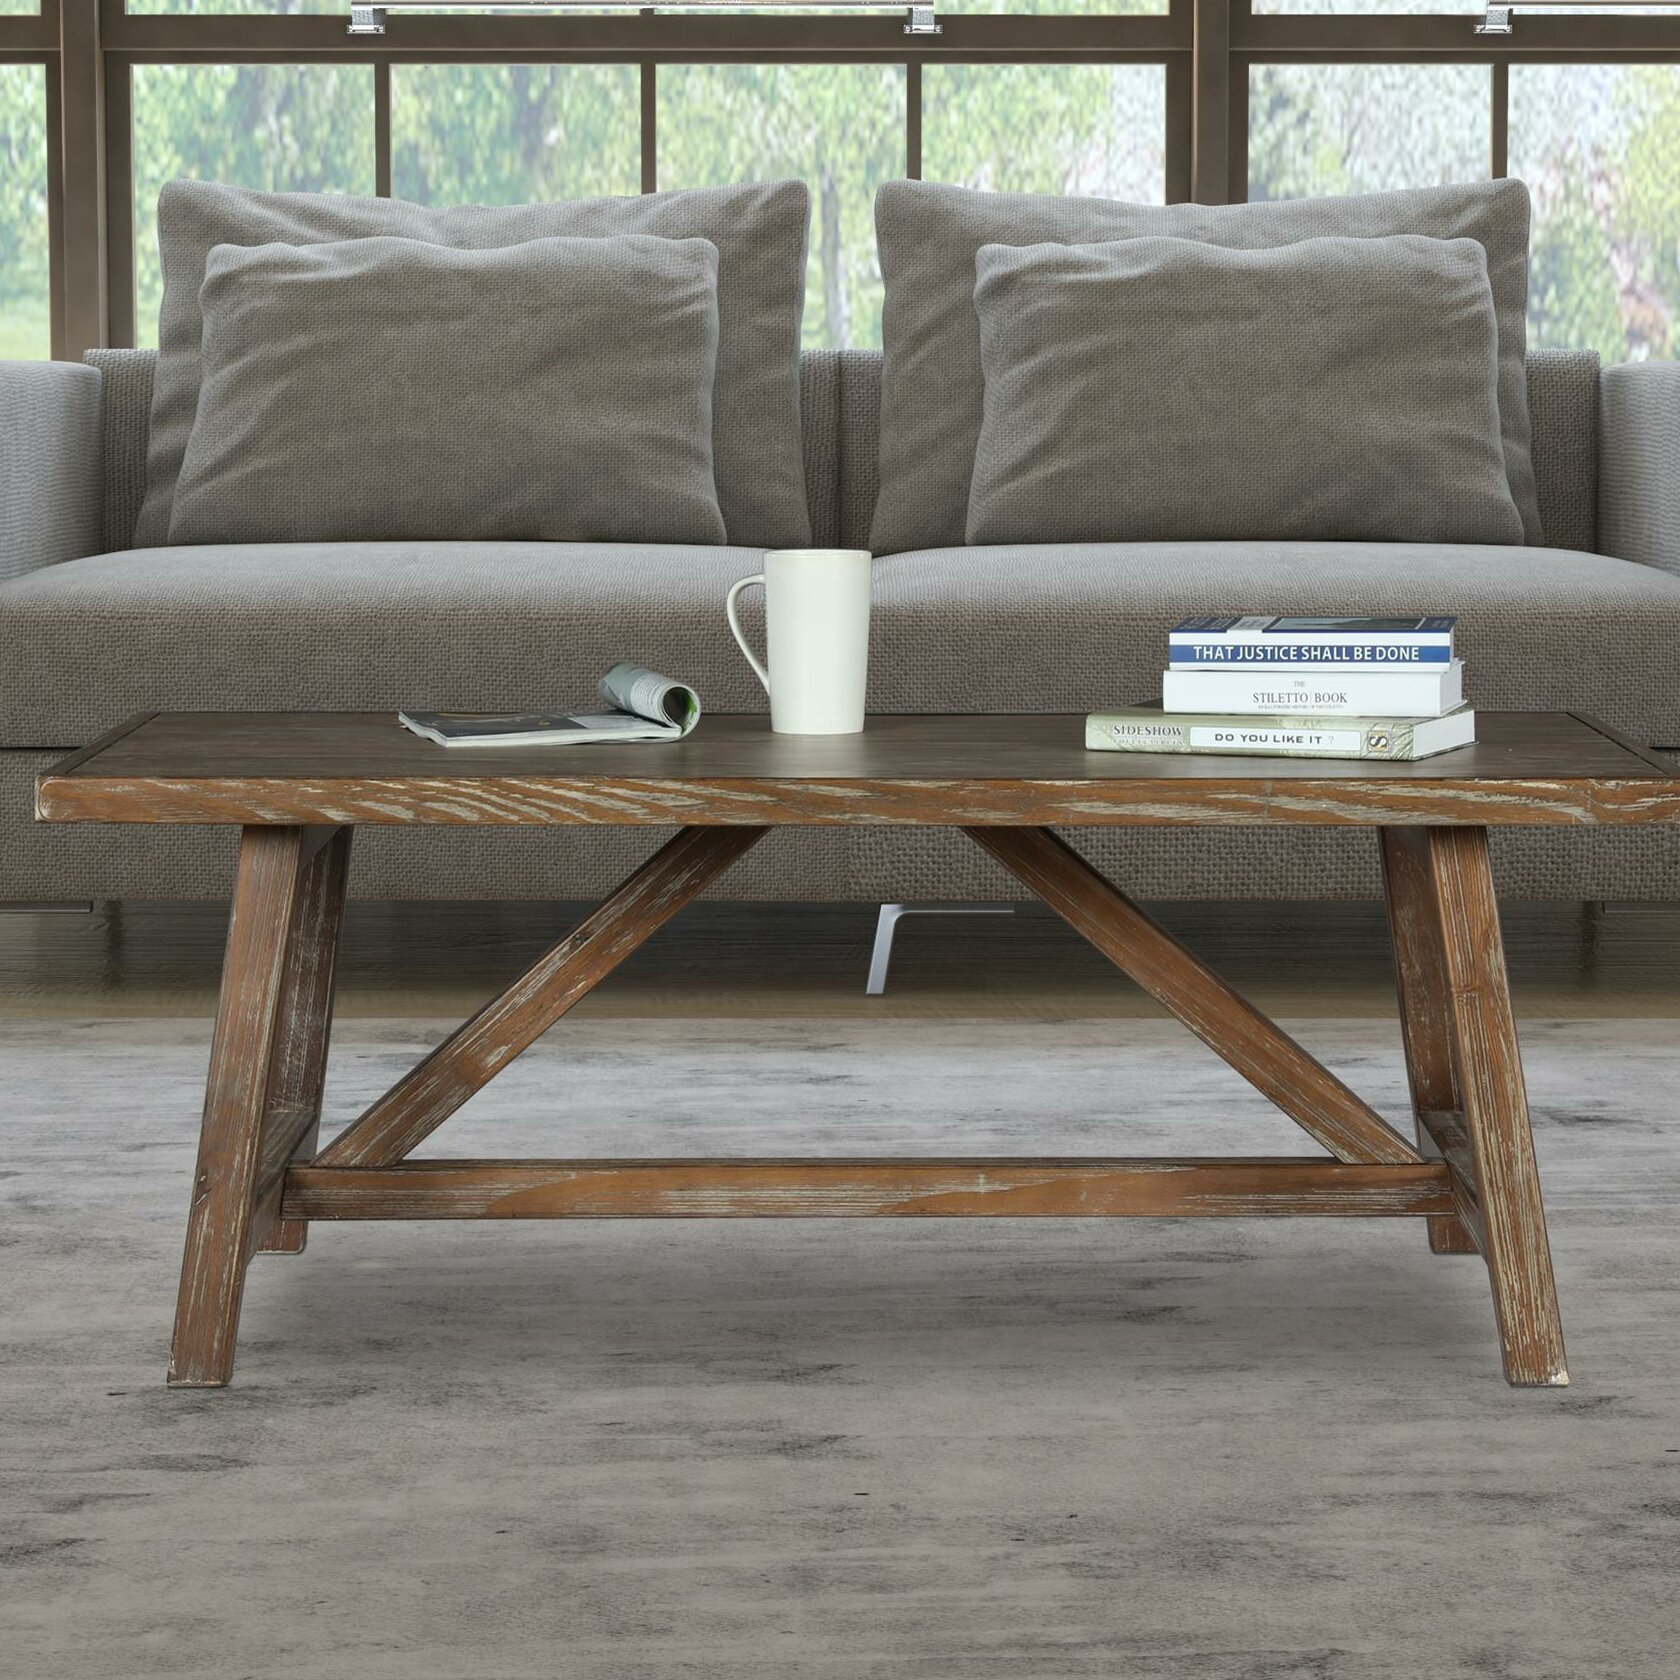 Trending Searches. Smart Coffee Table